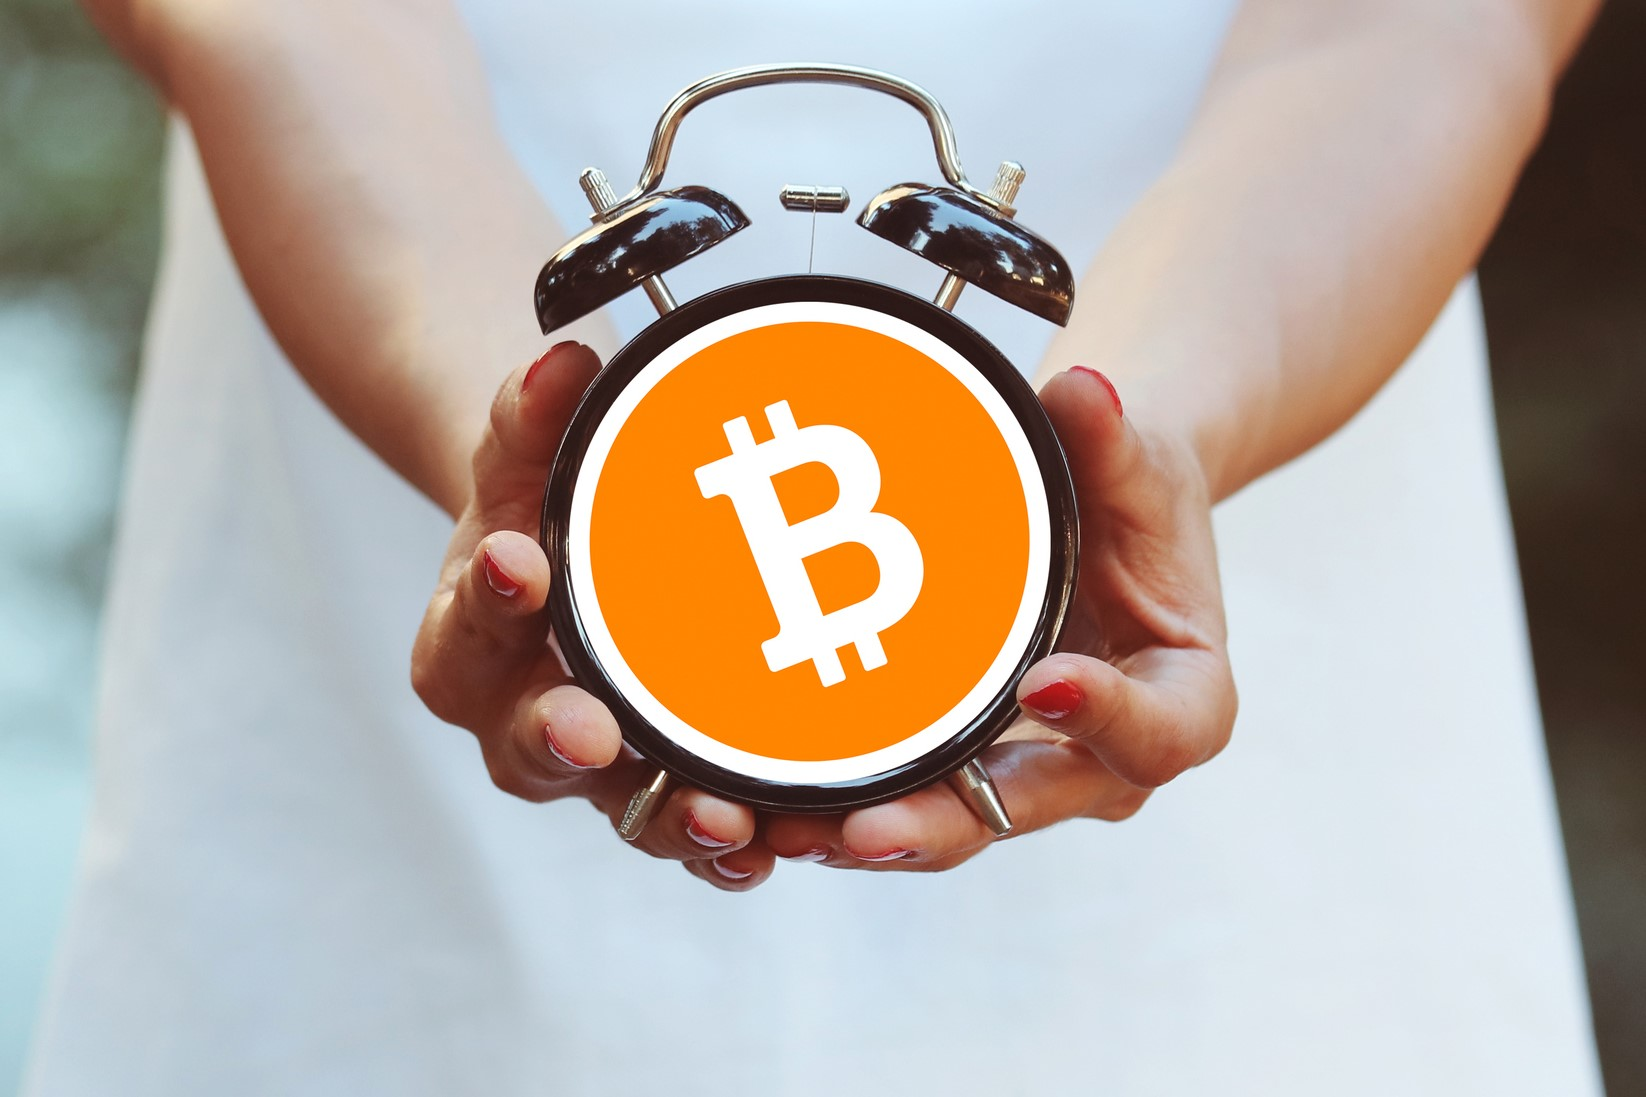 Bitcoin Transactions Are Down: Should Investors Worry?